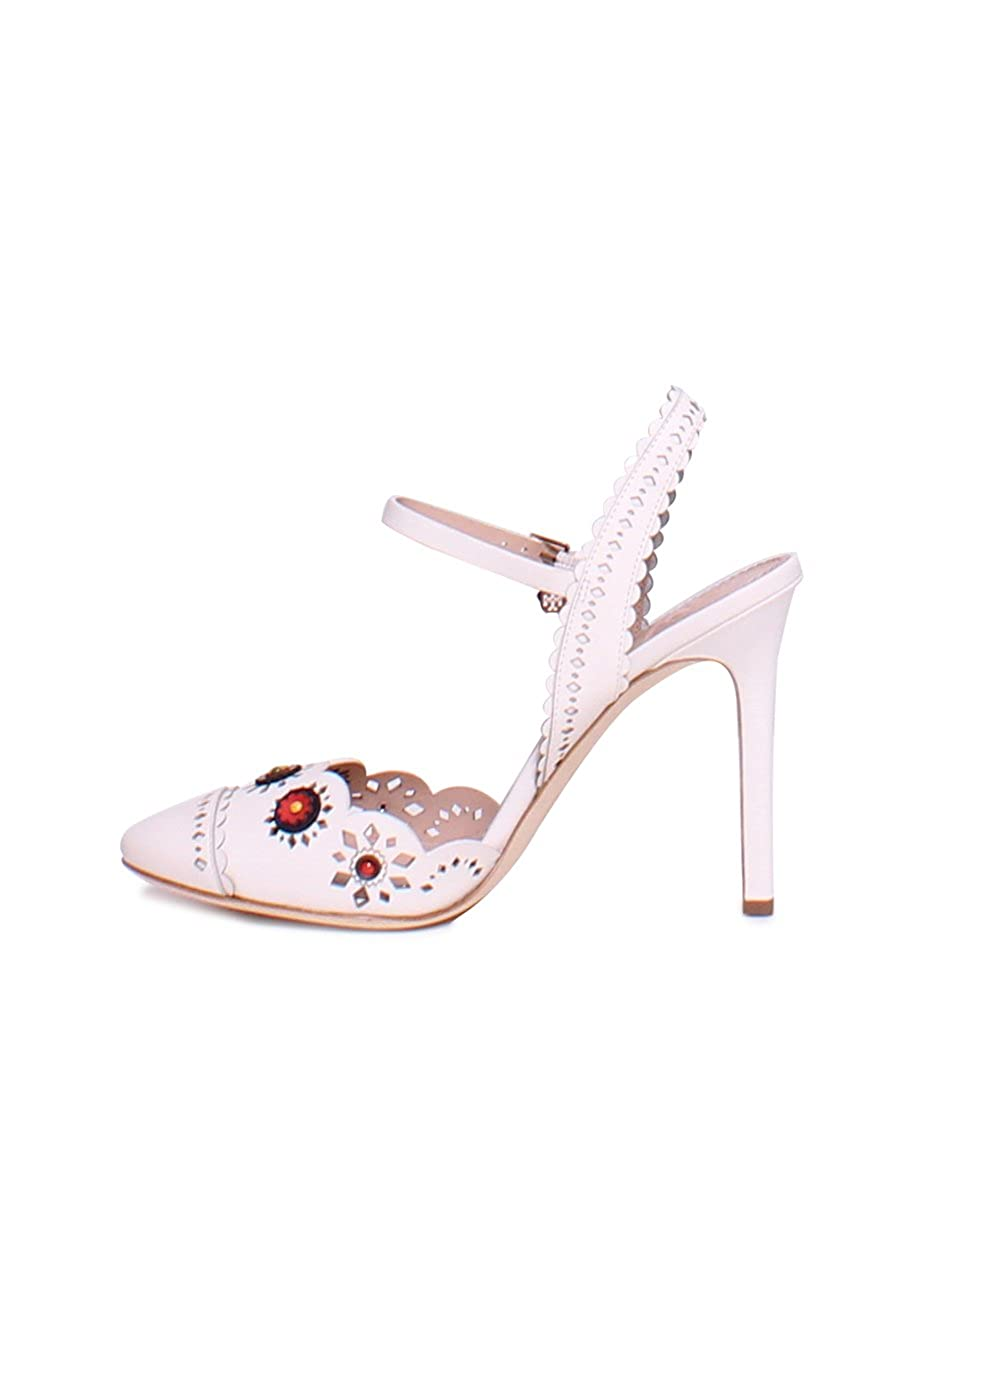 a150f675fe5 Tory Burch Marguerite Perforated Leather Sandals